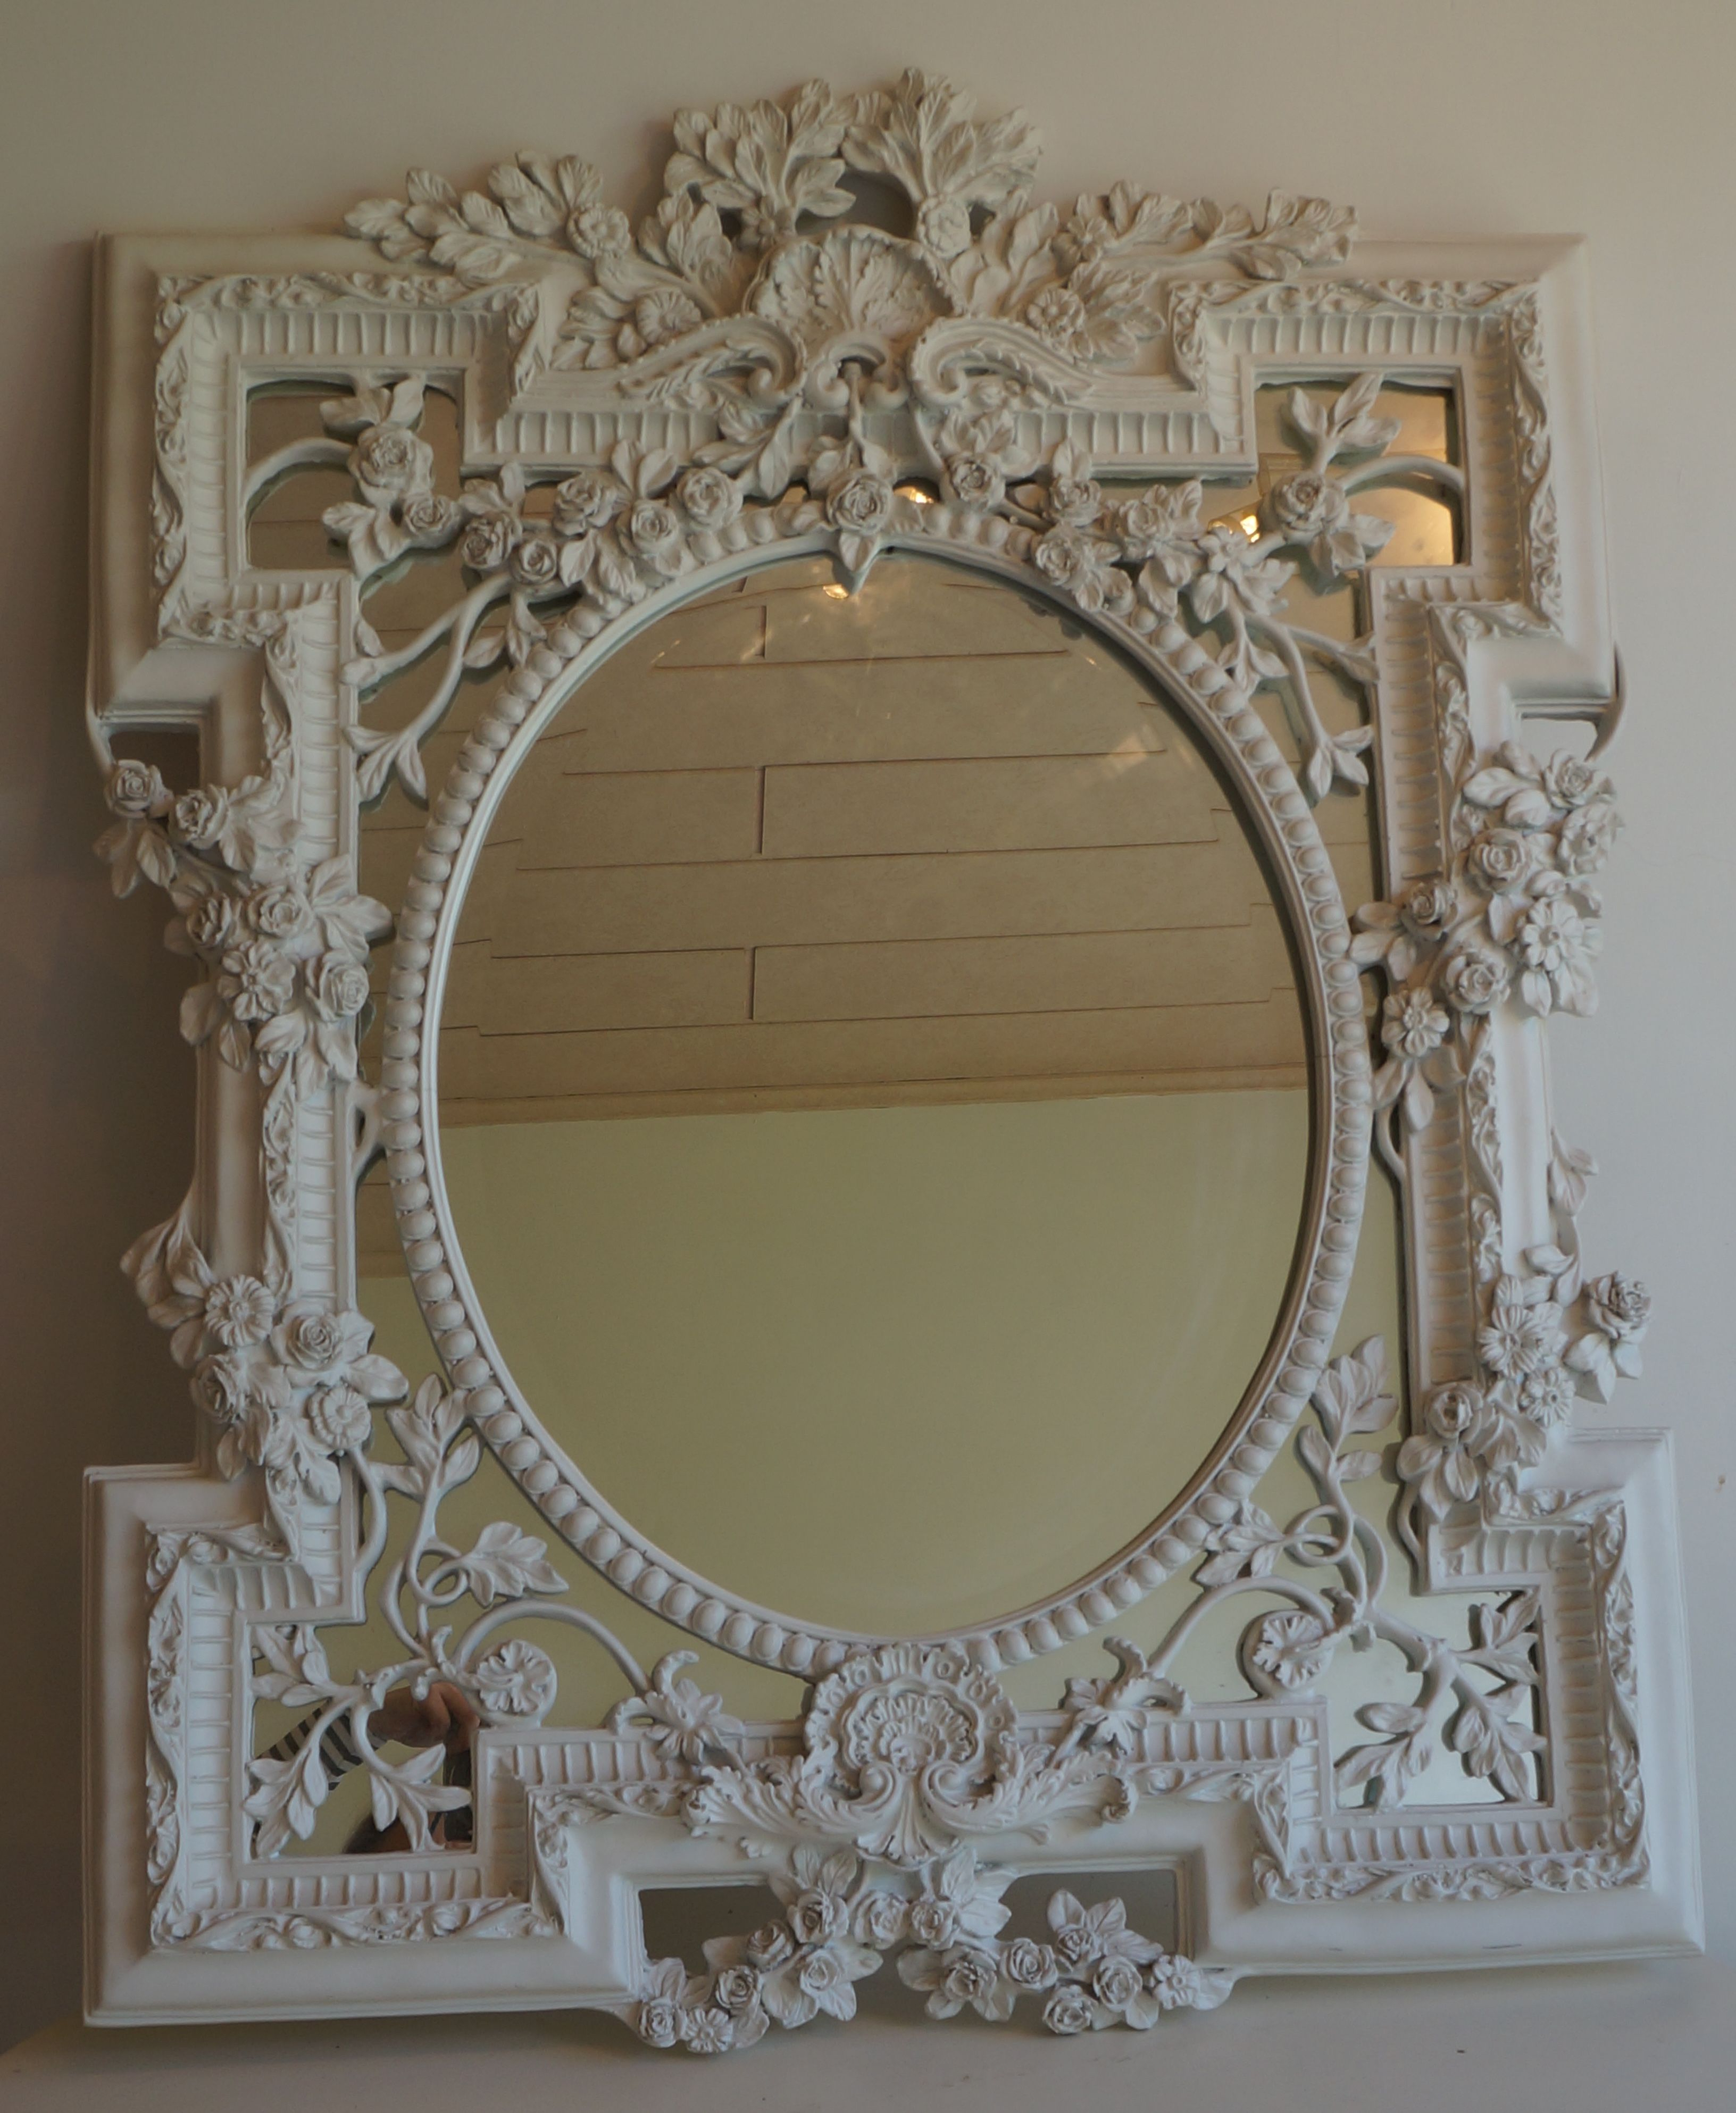 Well Known Decorative Large Wall Mirrors Regarding Shabbychic White Painted Ornate Relief Decorative Large Wall Mirror (View 20 of 20)